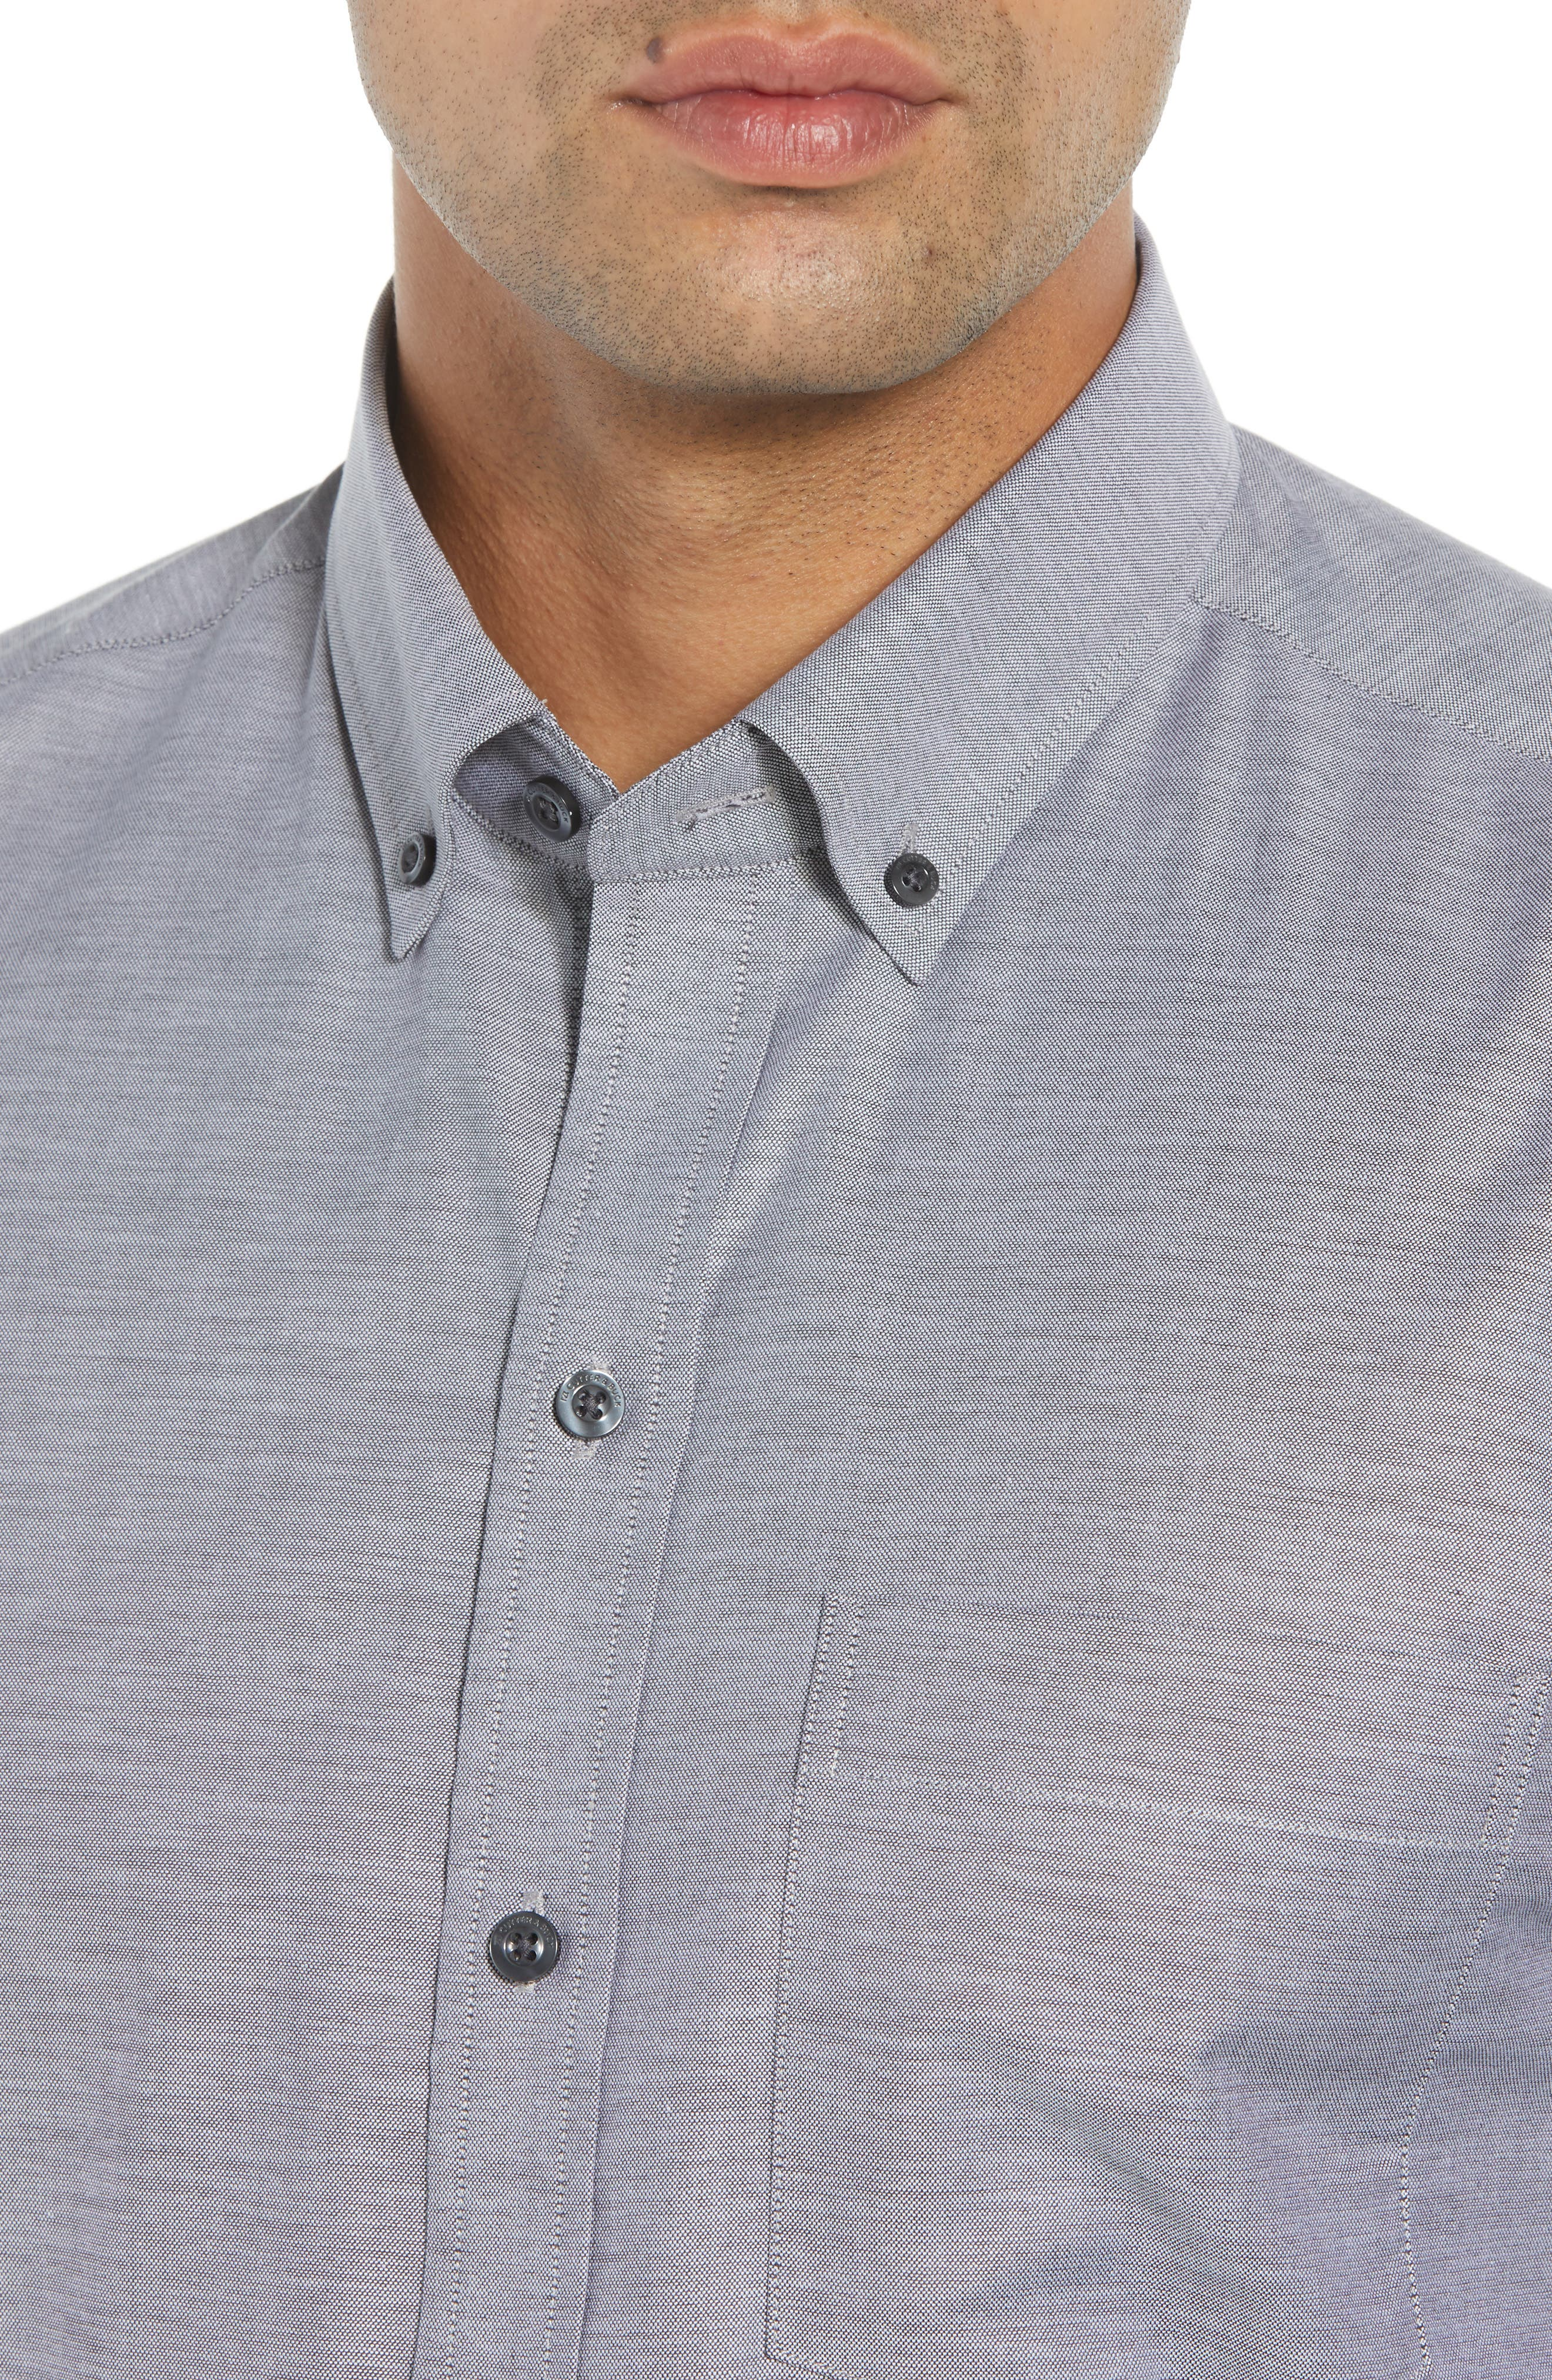 Tailor Regular Fit Oxford Sport Shirt,                             Alternate thumbnail 2, color,                             CHARCOAL 2